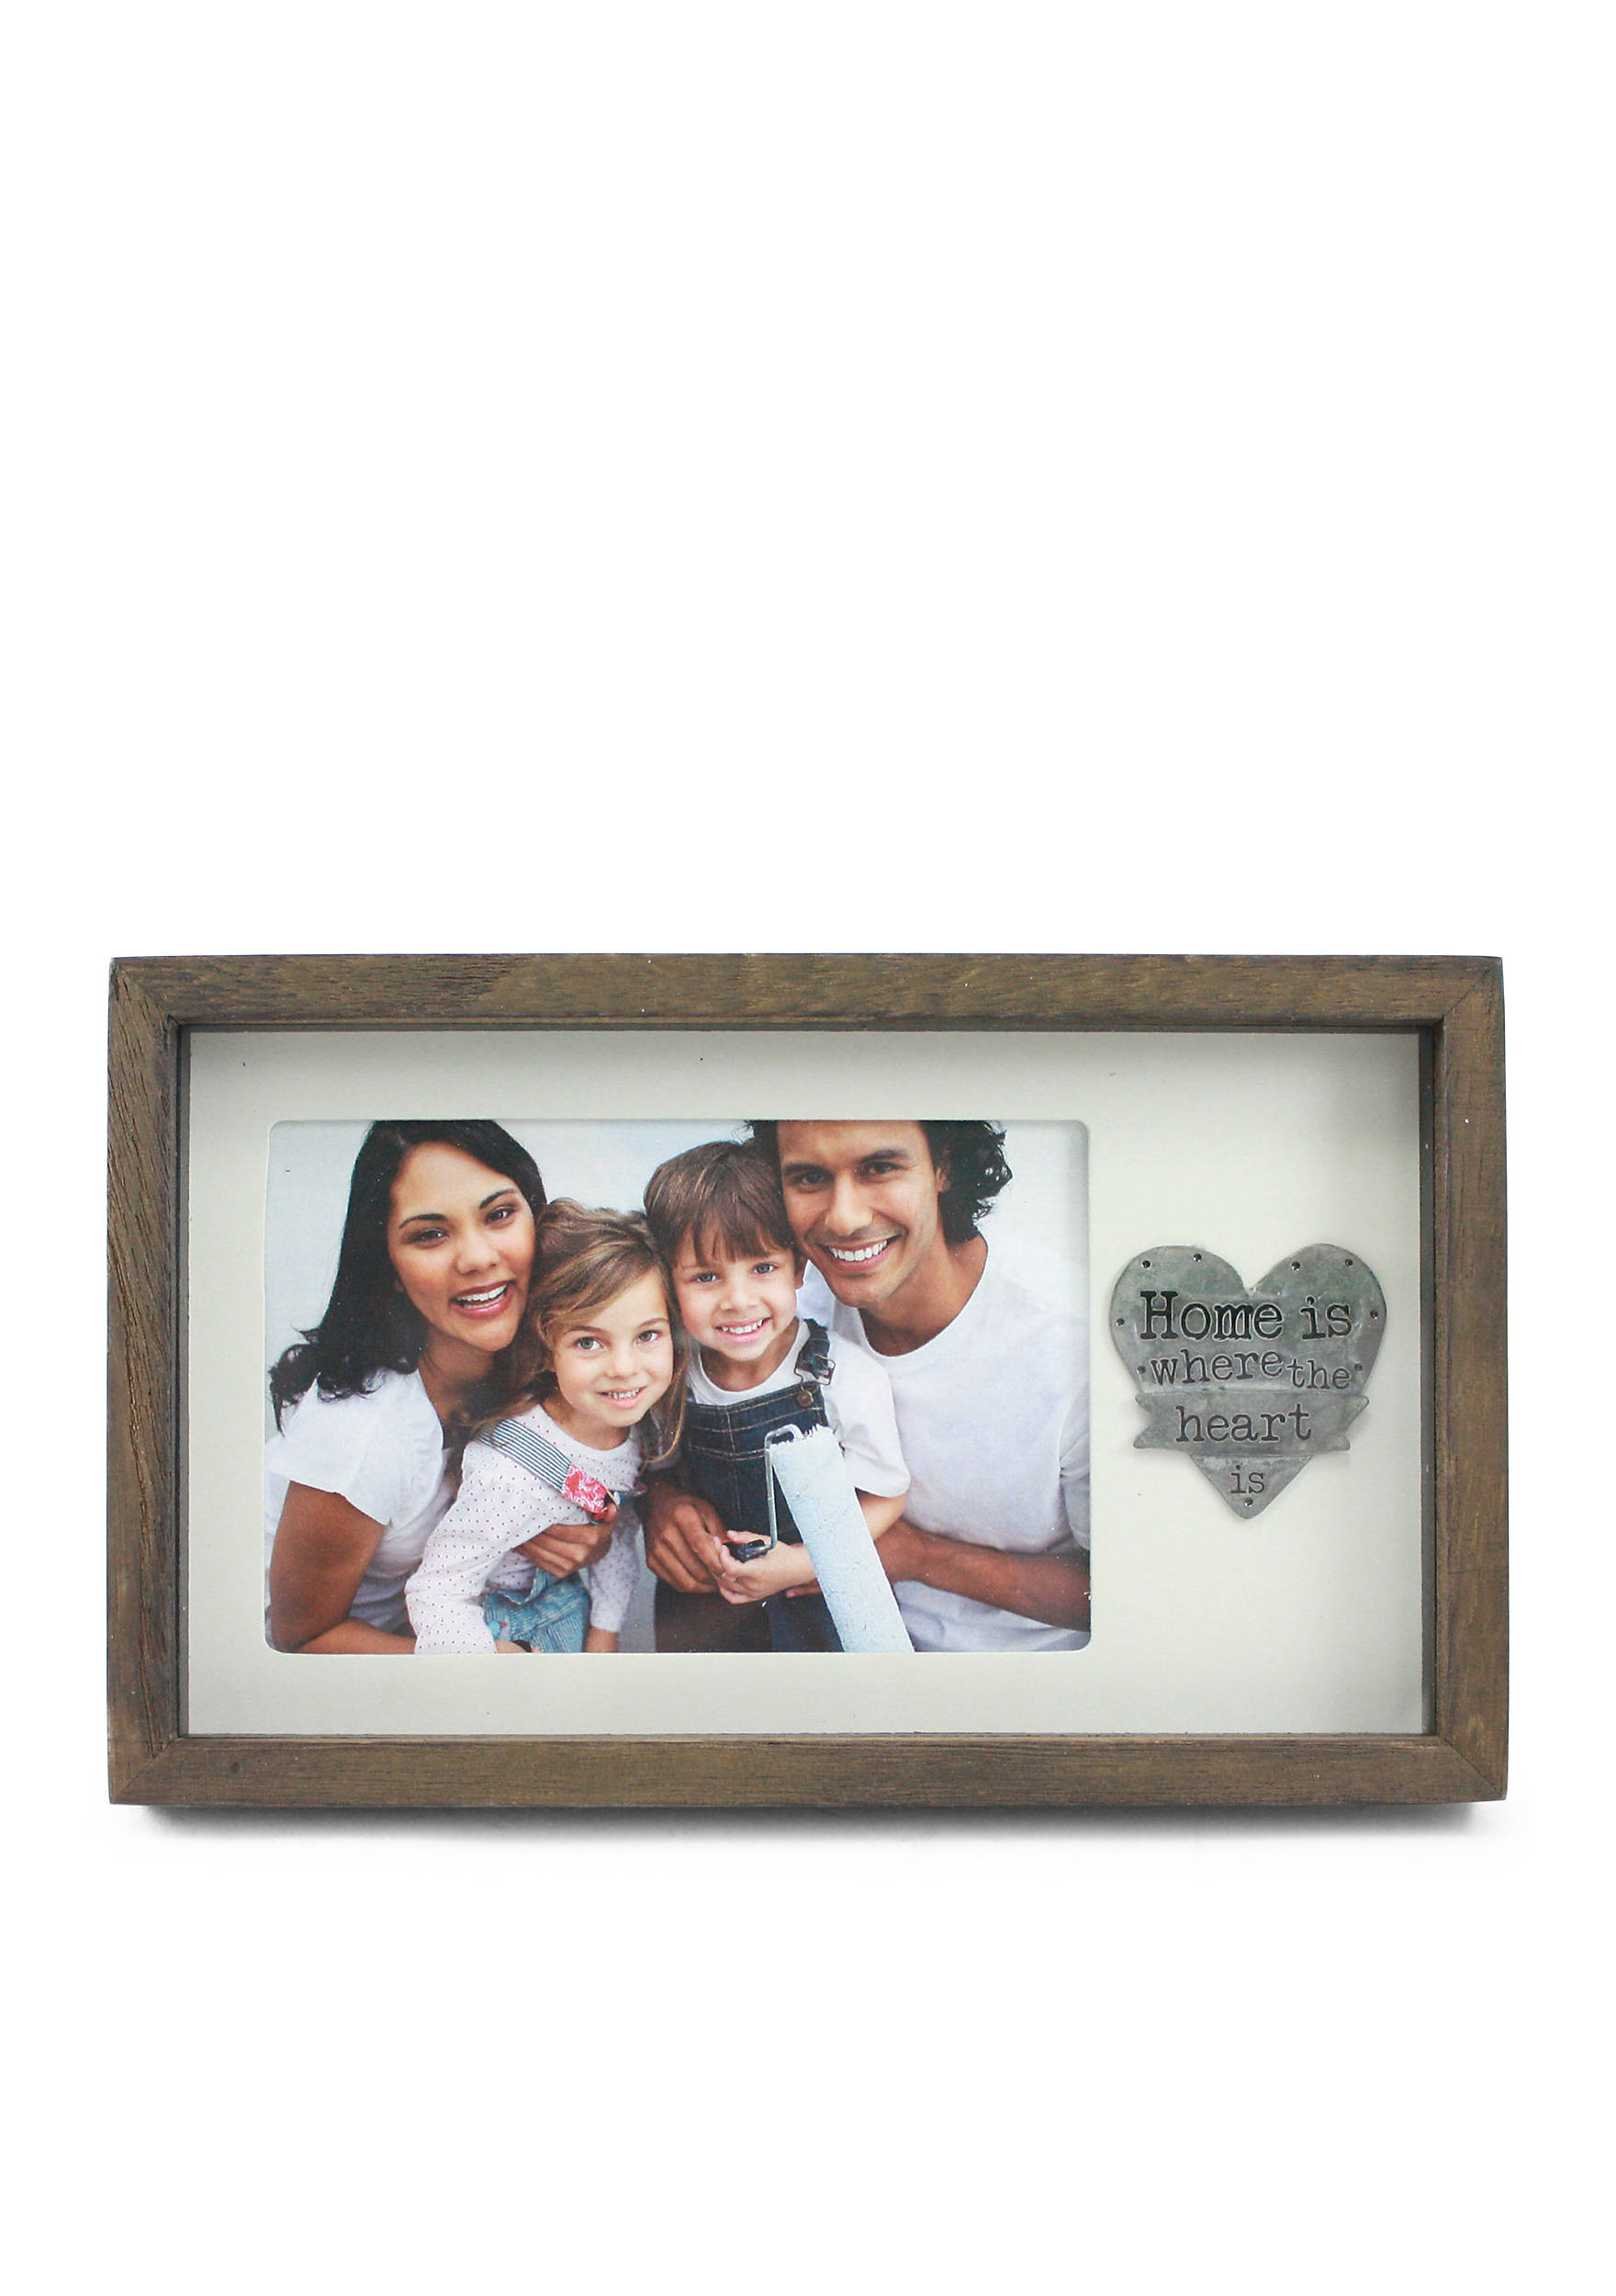 Fetco home dcor 4 x 6 stampy home is where the heart is frame images jeuxipadfo Gallery